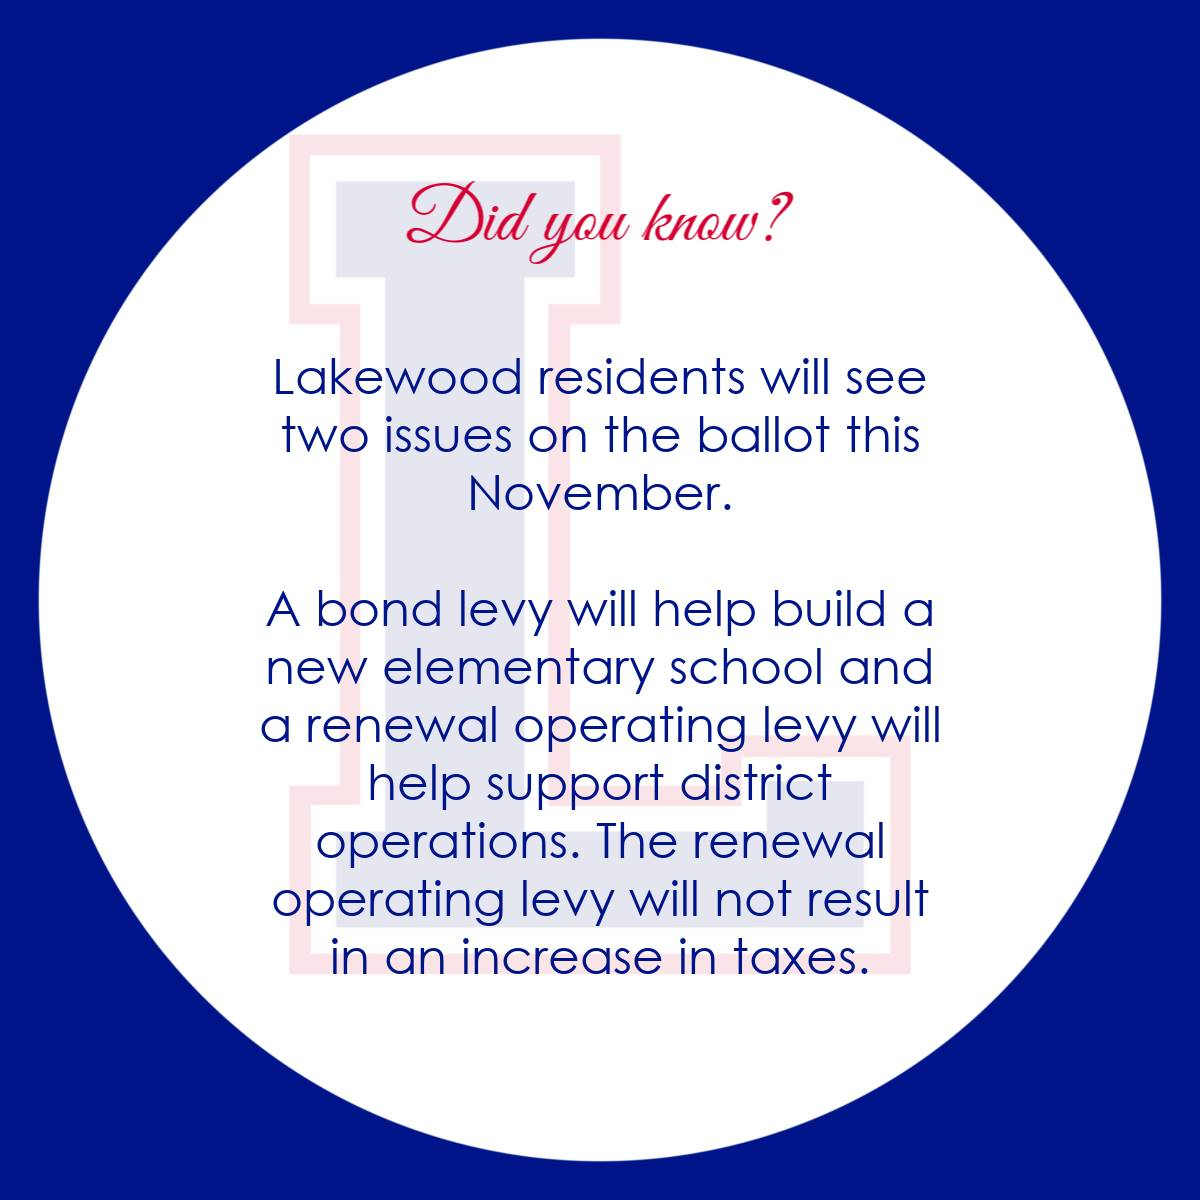 Lakewood residents will see two issues on the ballot this November. A bond levy will help build a ne